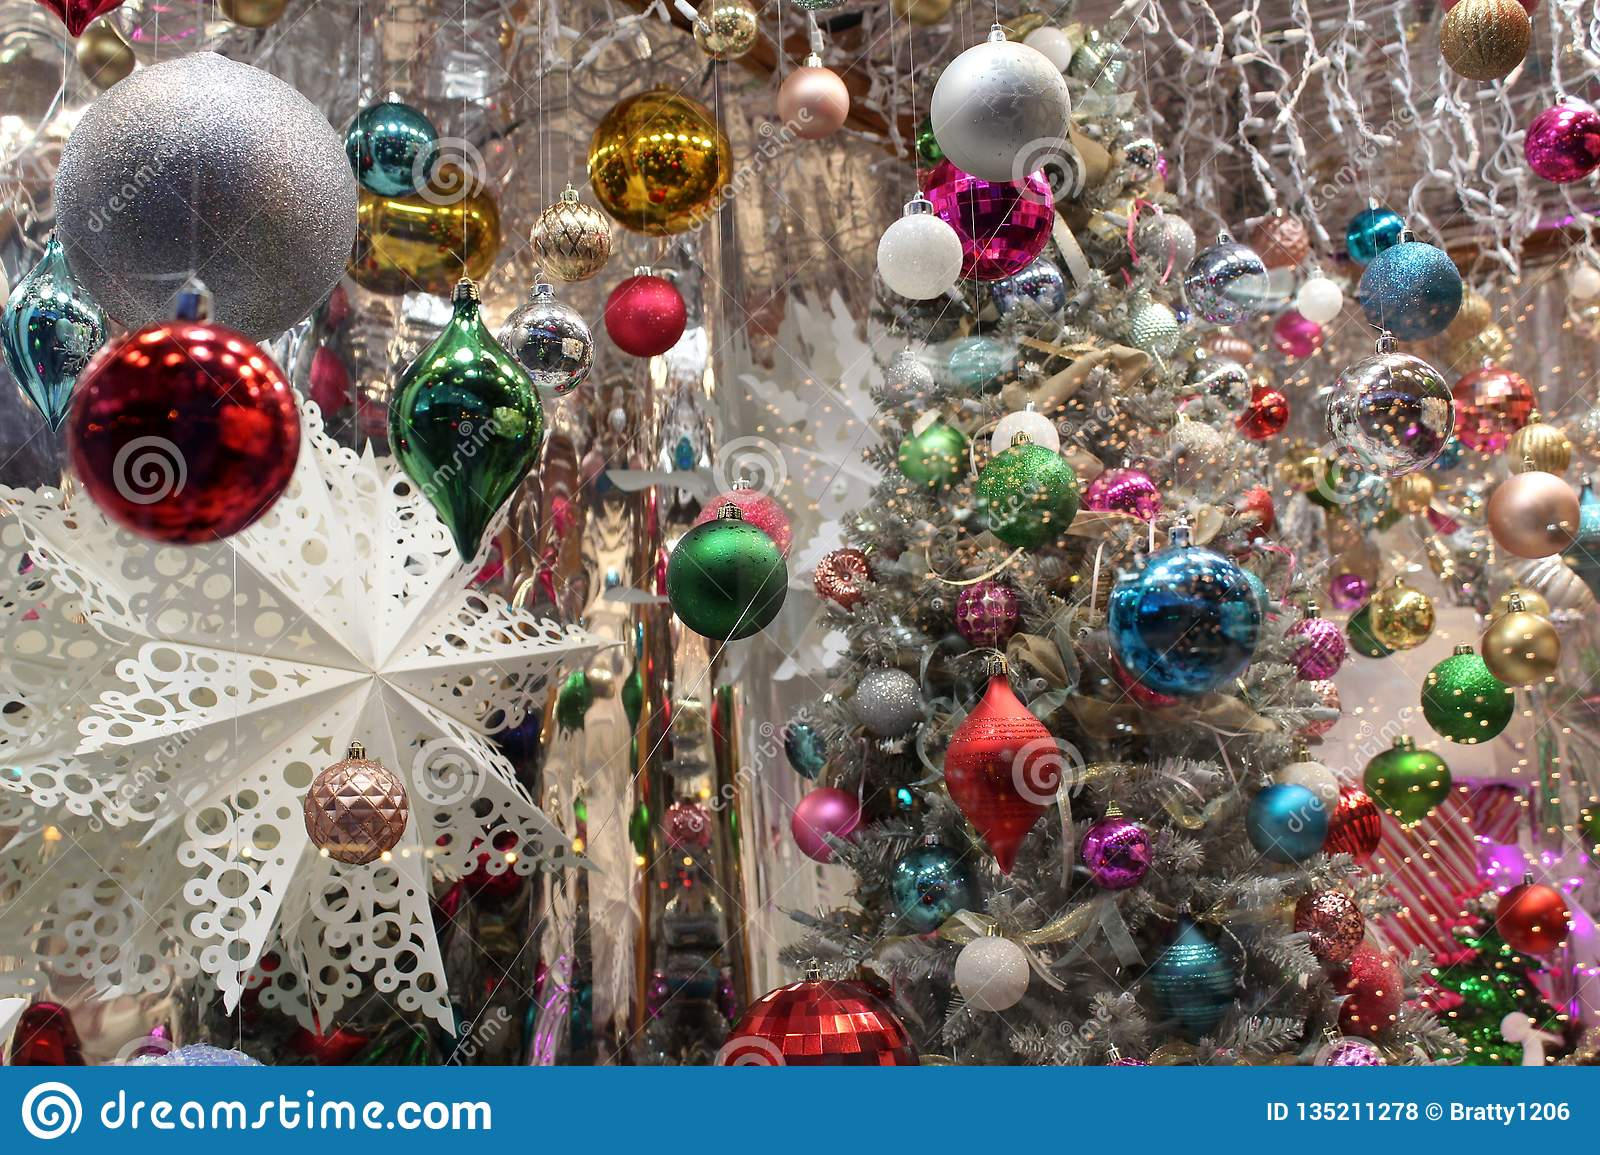 Holiday Decorations In Silver Red Gold Blue Green And White Seen With Twinkling Lights Of Window Stock Photo Image Of Pretty Horizontal 135211278